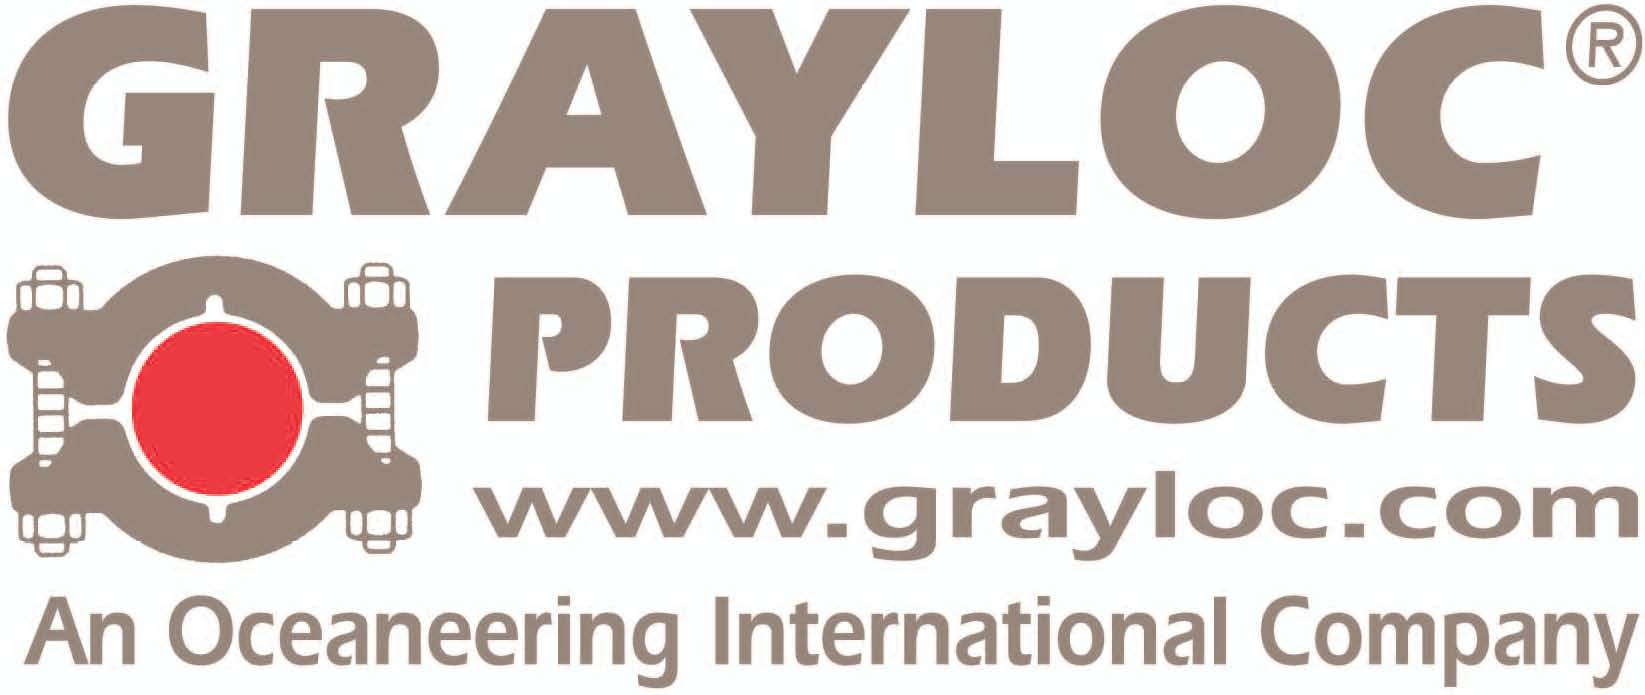 Grayloc Seal Rings | Munaco Sealing Solutions